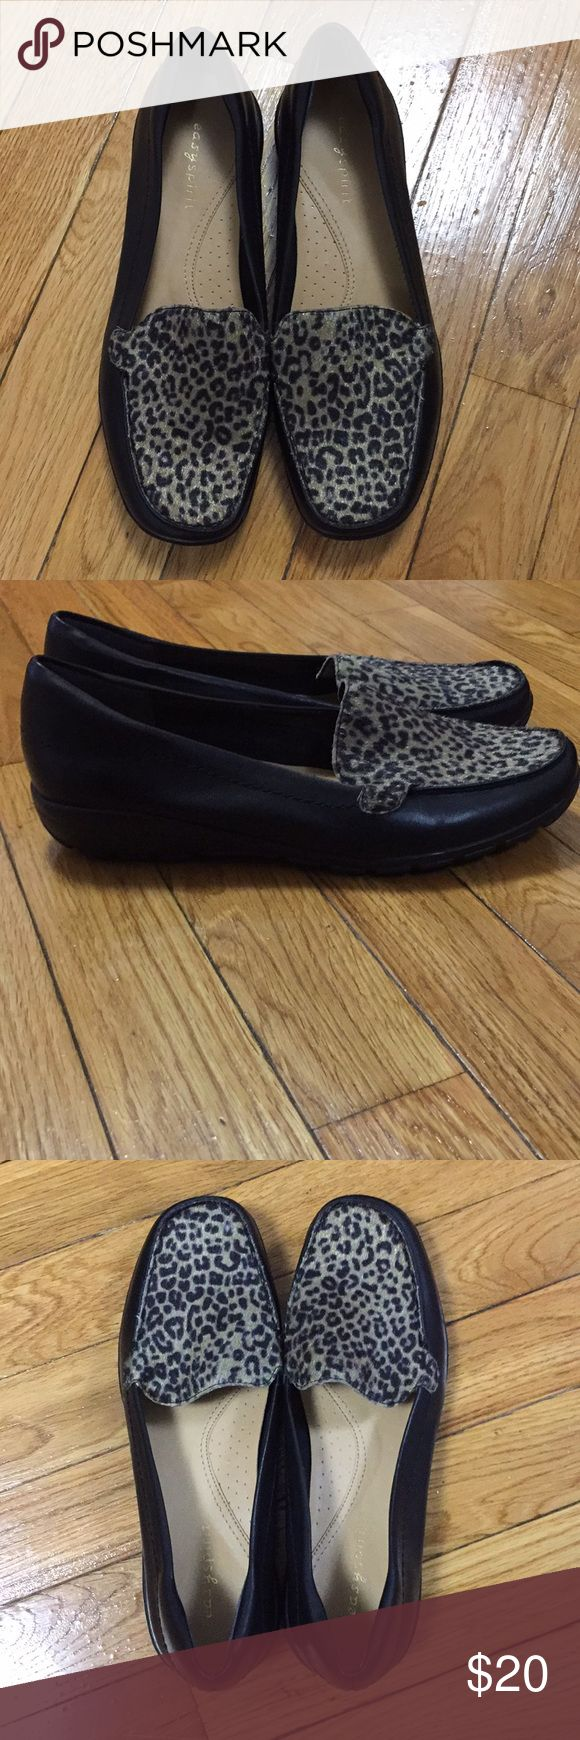 Never worn! Easy Spirit Abide Loafer Never worn! Easy Spirit Abide Loafer in black leather with leopard print top of loafer. Leopard print area I think is calf hair. Women's size 6.5 regular width. Easy Spirit Shoes Flats & Loafers